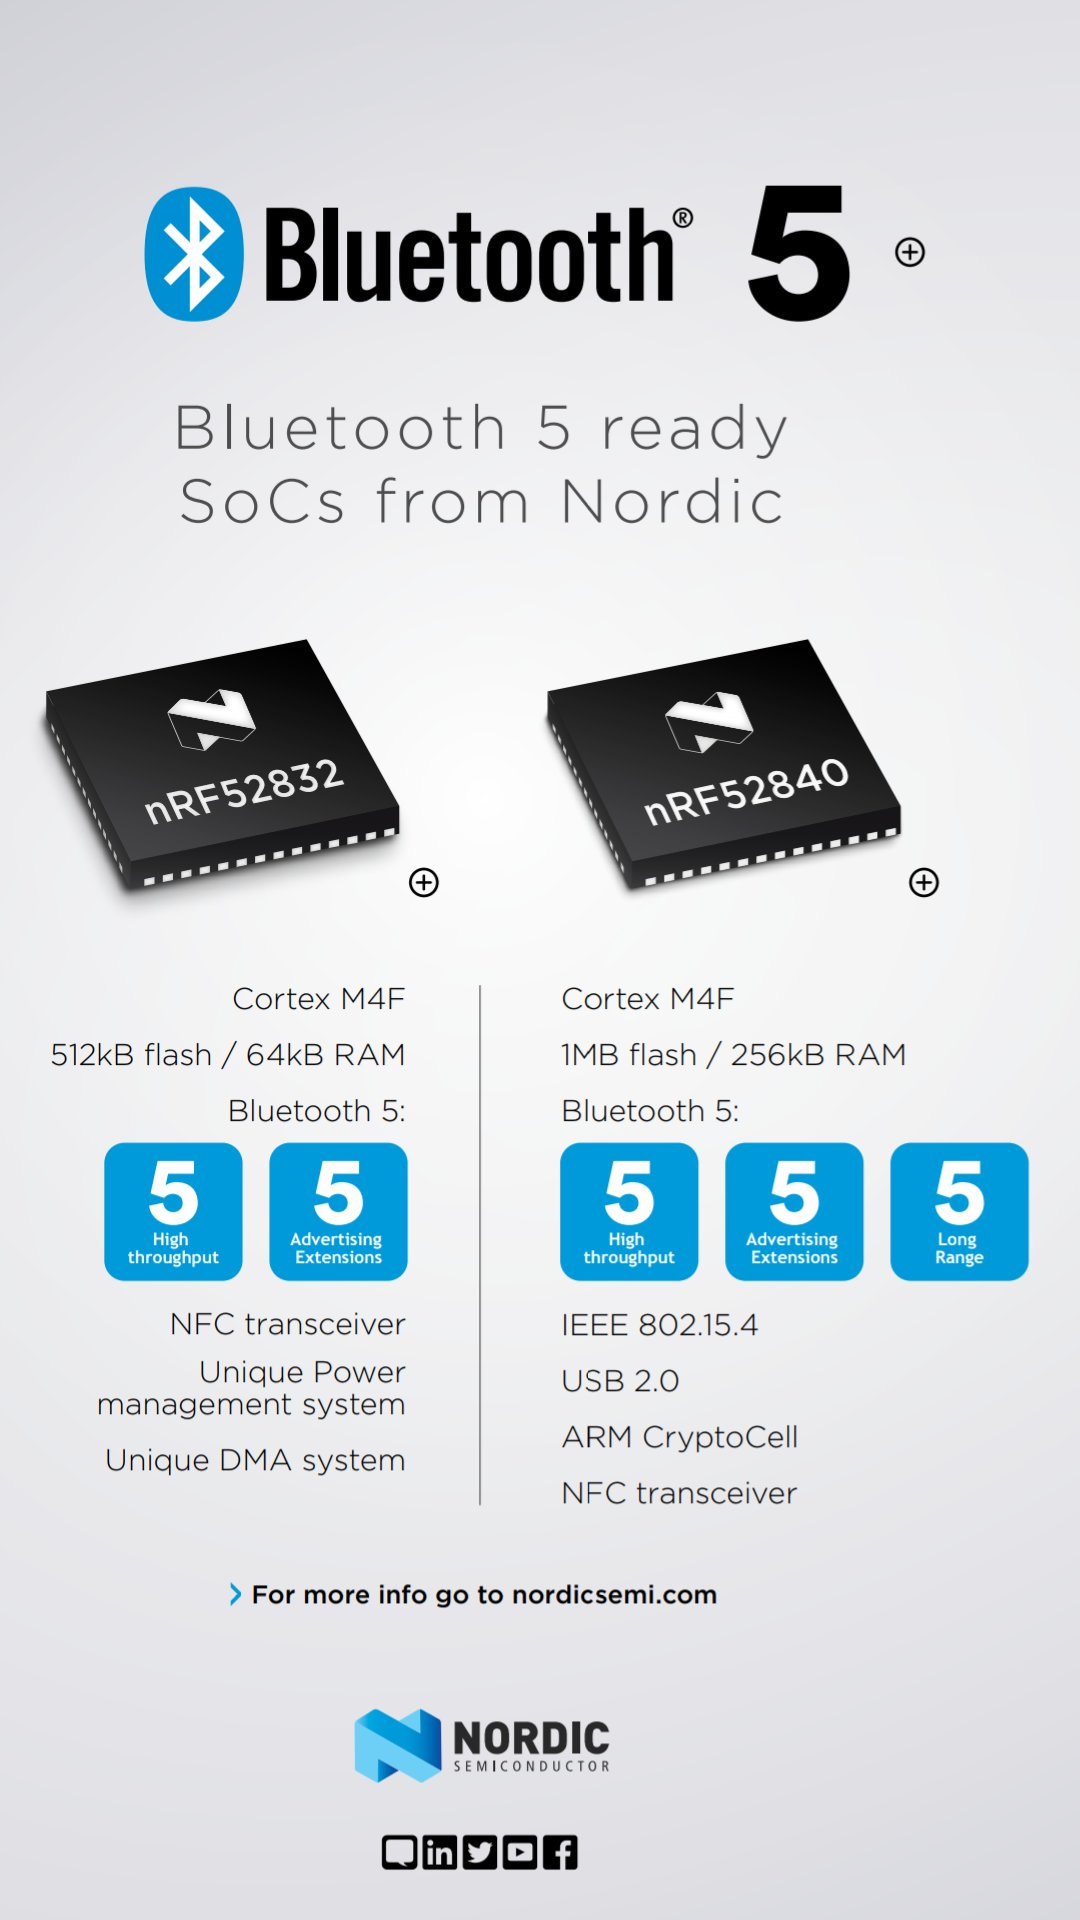 Which is best candidate out of nrf52840 & nRF52832 for BluetoothMesh